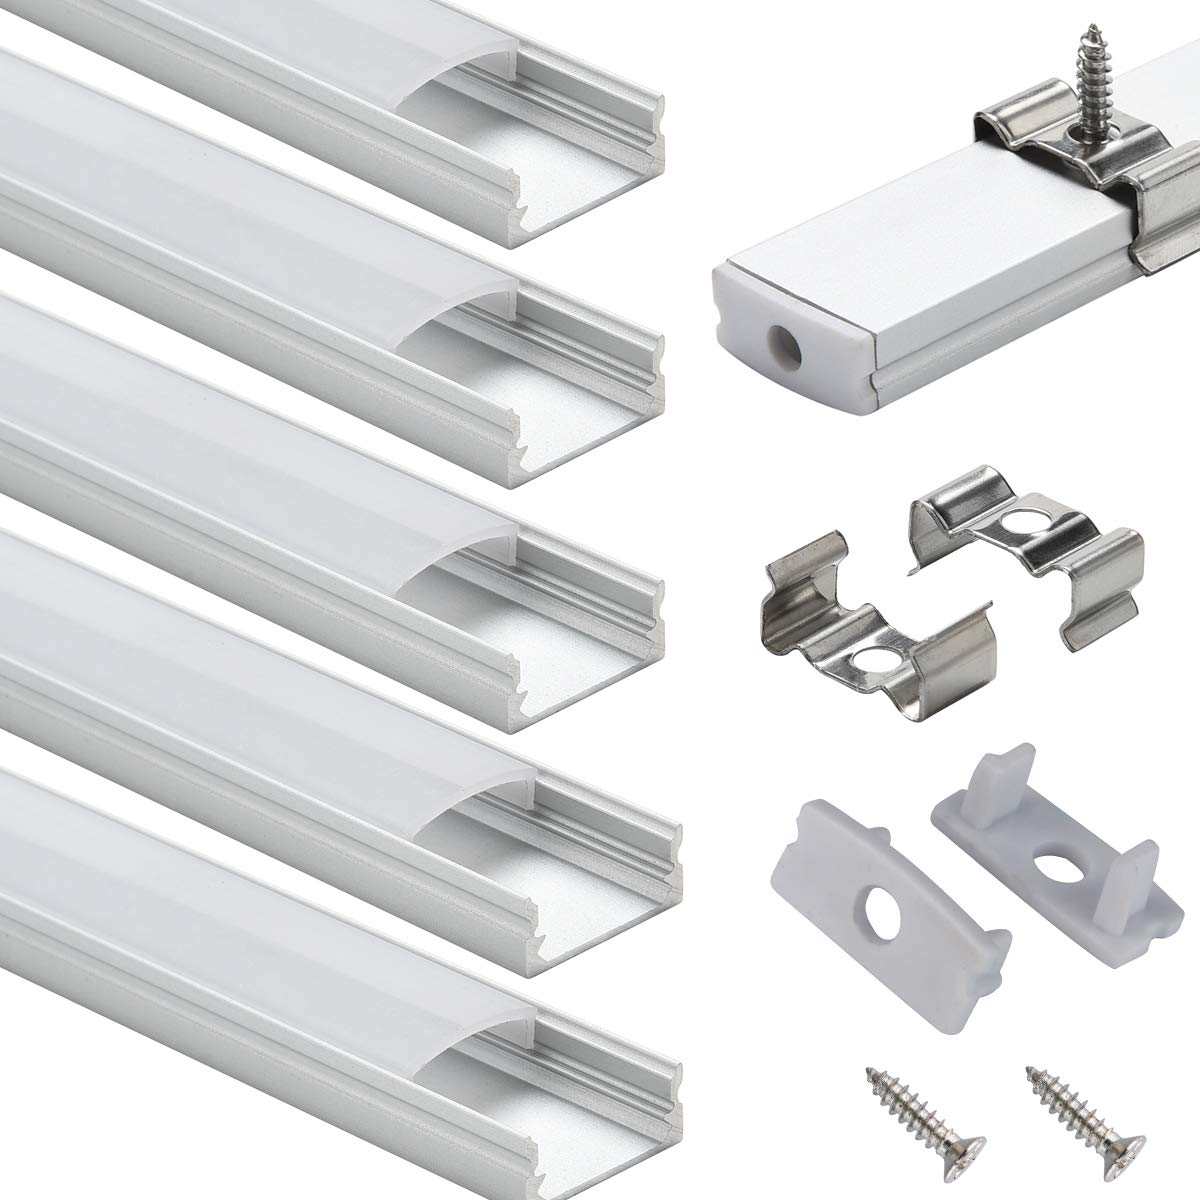 LED Aluminum Channel with Cover - StarlandLed 6-Pack 1Meter/3.3ft LED Extrusions Track Diffusers Housing with End Caps and Mounting Clips for LED Flexible Strip by StarlandLed